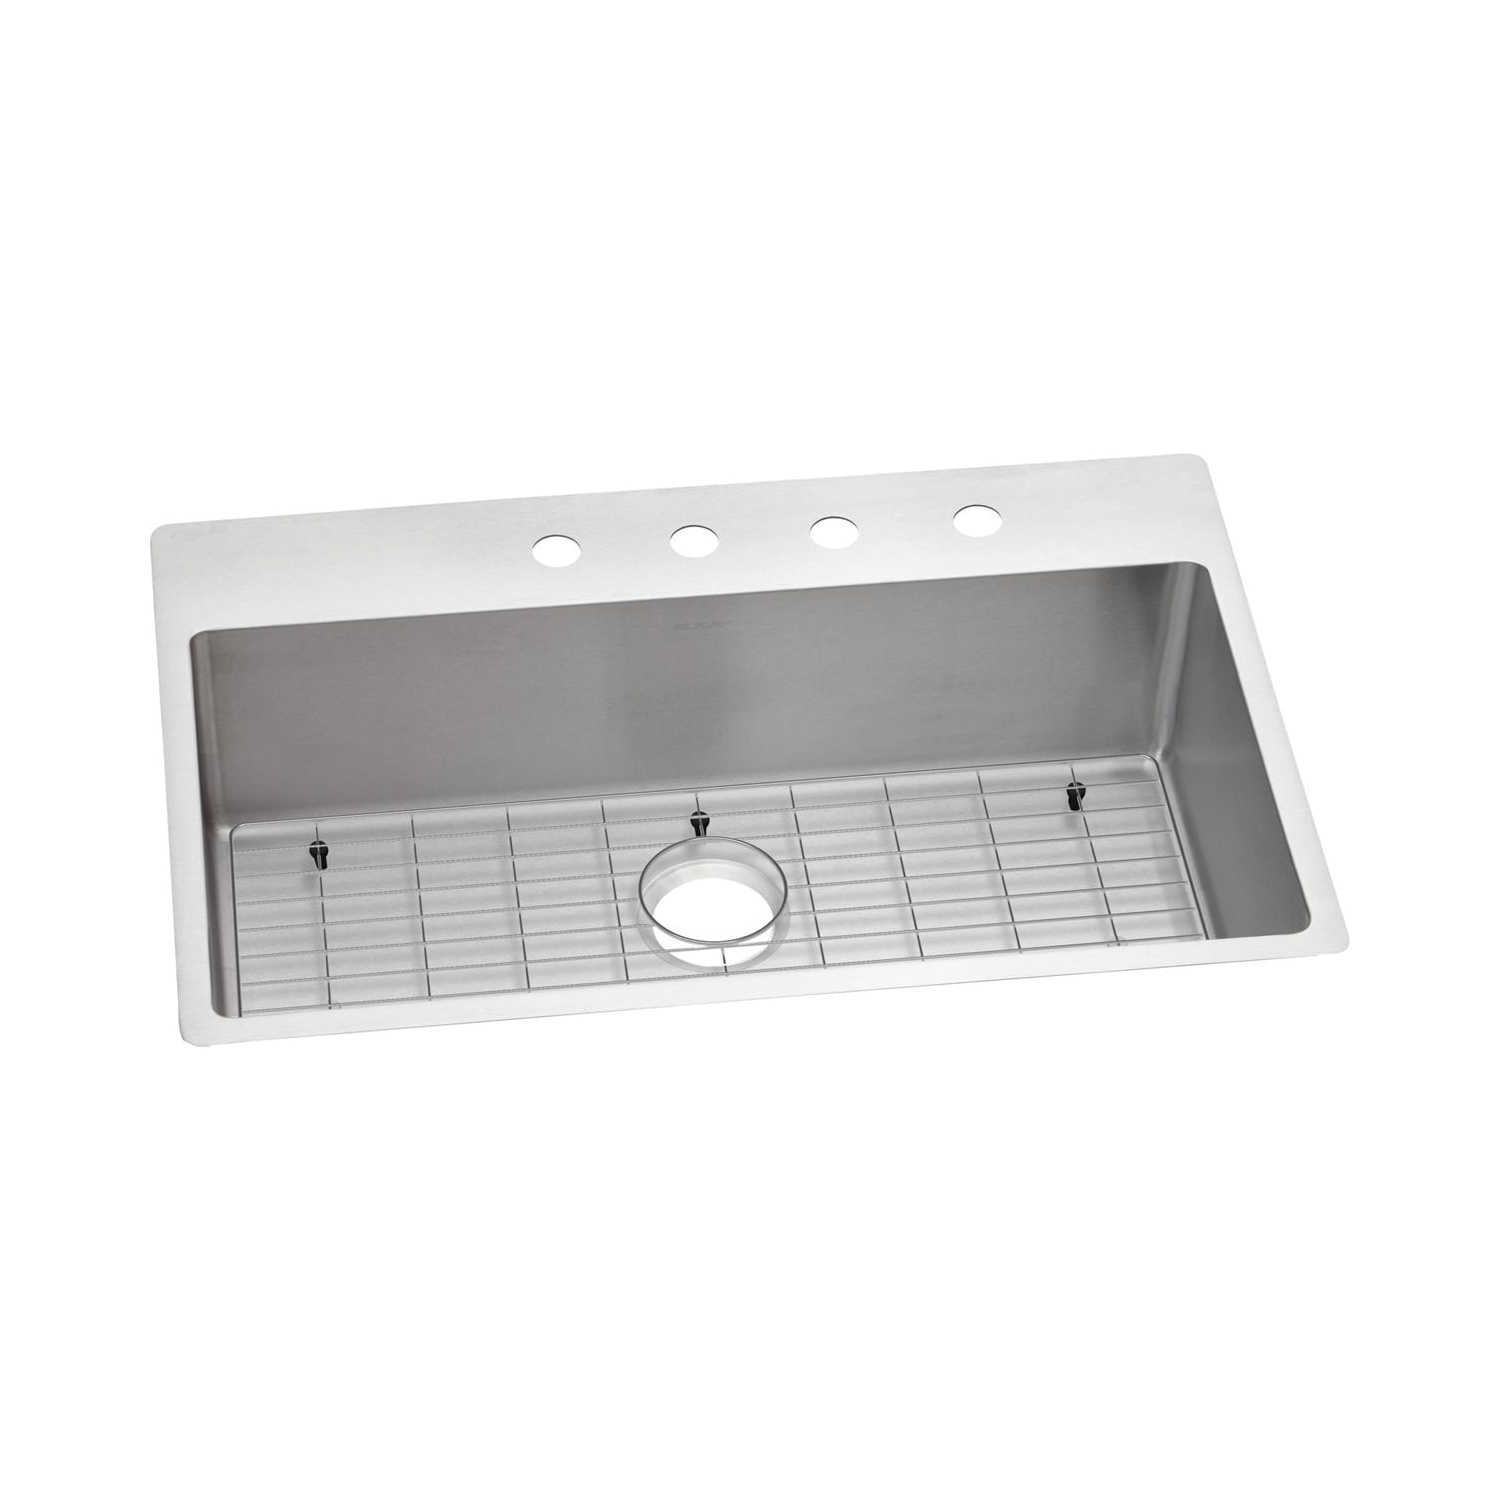 Elkay® ECTSRS33229BGFR2 Crosstown™ Dual Mount Sink Kit, Rectangular, 2 Faucet Holes, 22 in W x 33 in D x 9 in H, Top/Under Mount, Stainless Steel, Polished Satin, Import